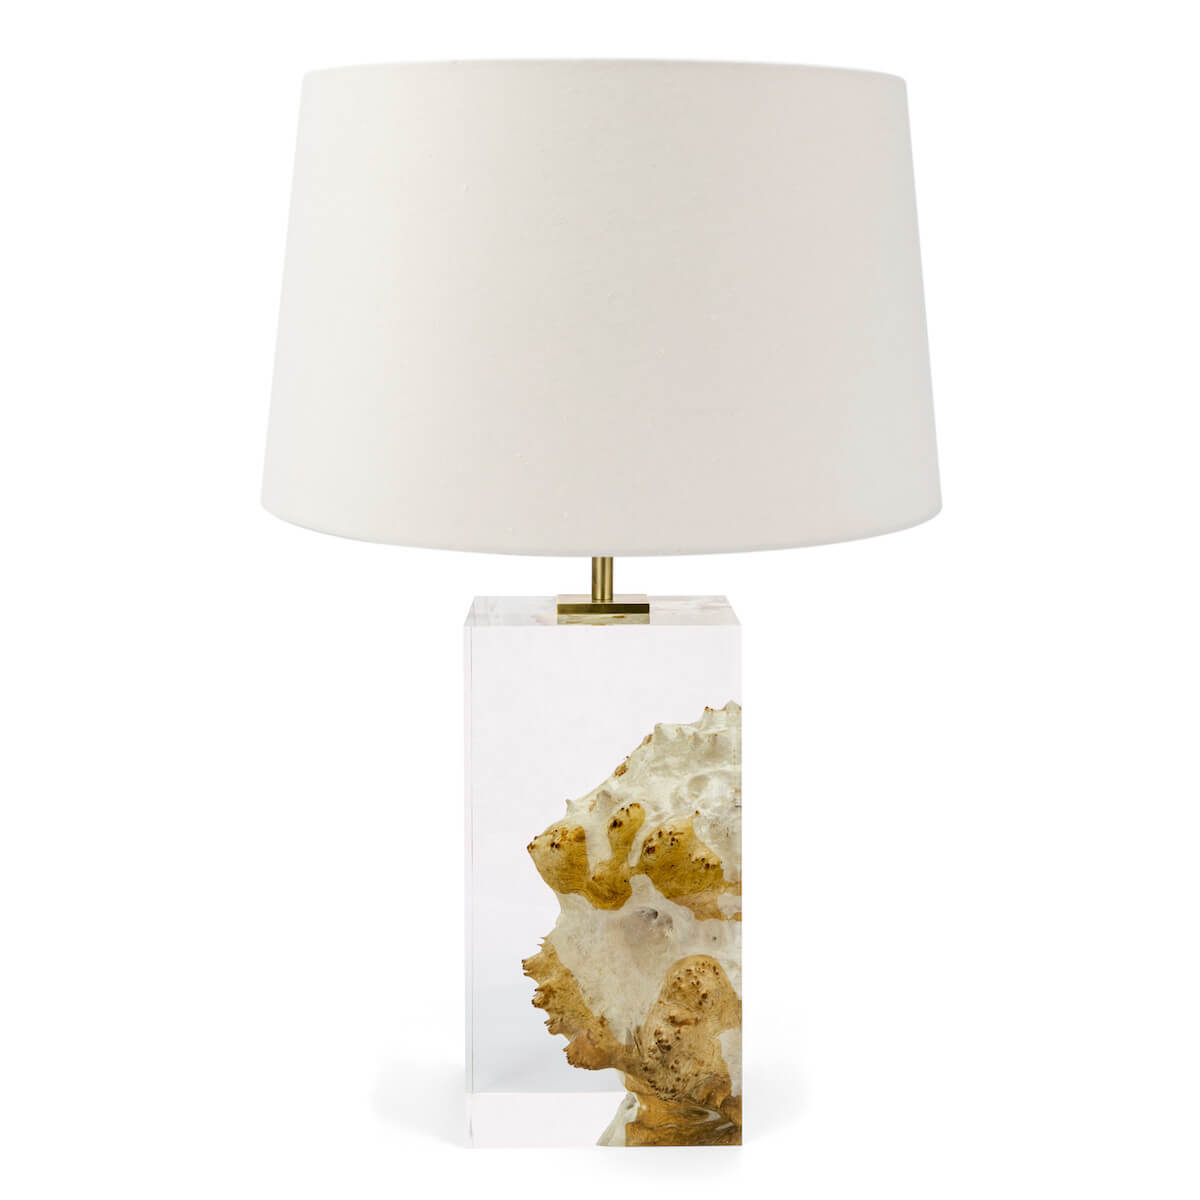 Red Mallee and Acrylic Table Lamp II by Iluka London for AUTHOR